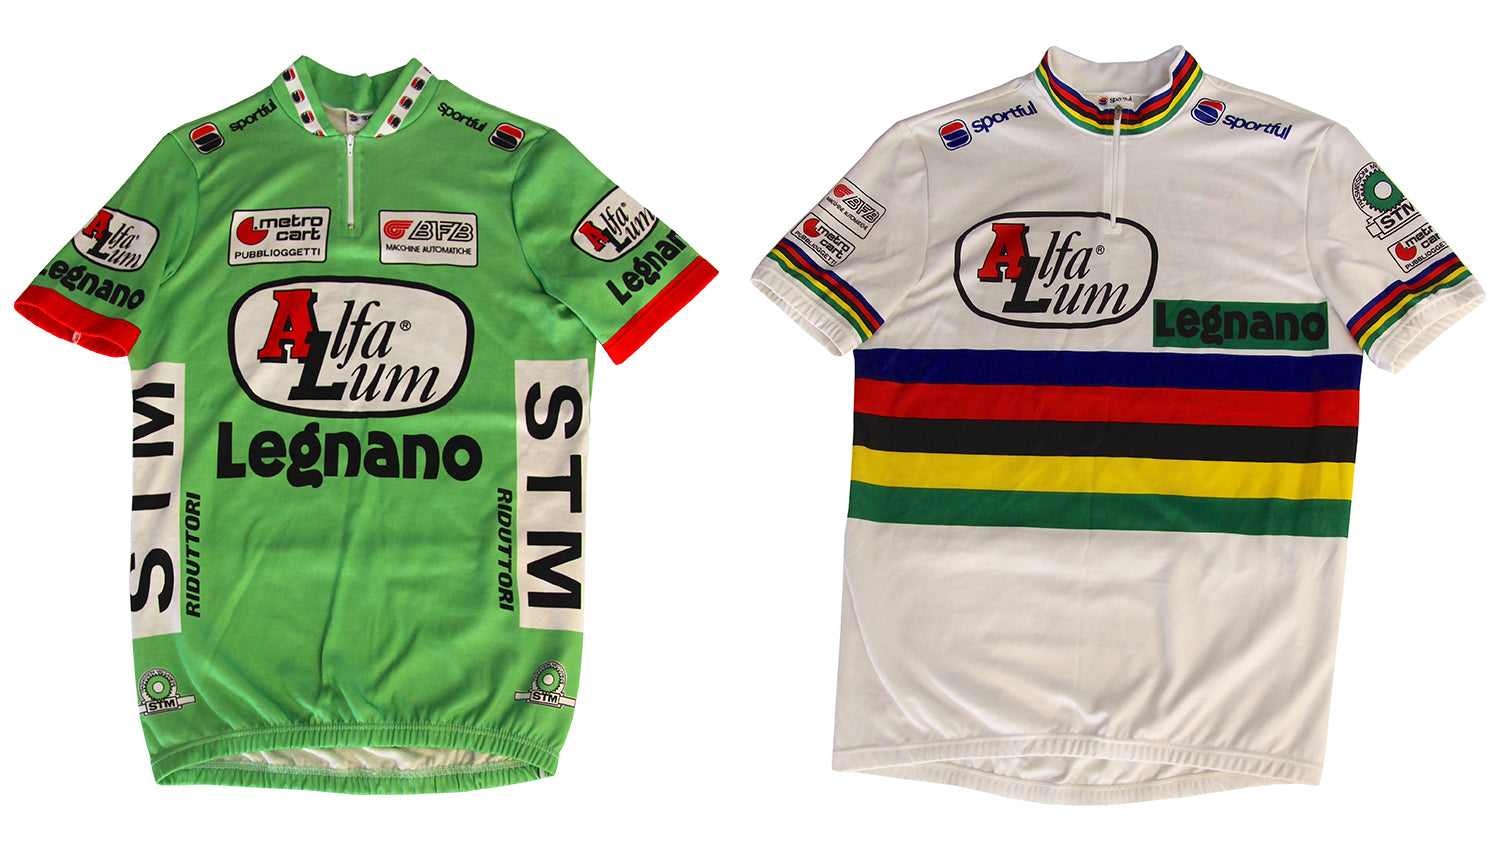 The 1988 Alfa Lum/Legnano team jersey and Fondriest's World Champion jersey that Sportful made before he made his big money move to Del Tongo for 1989.